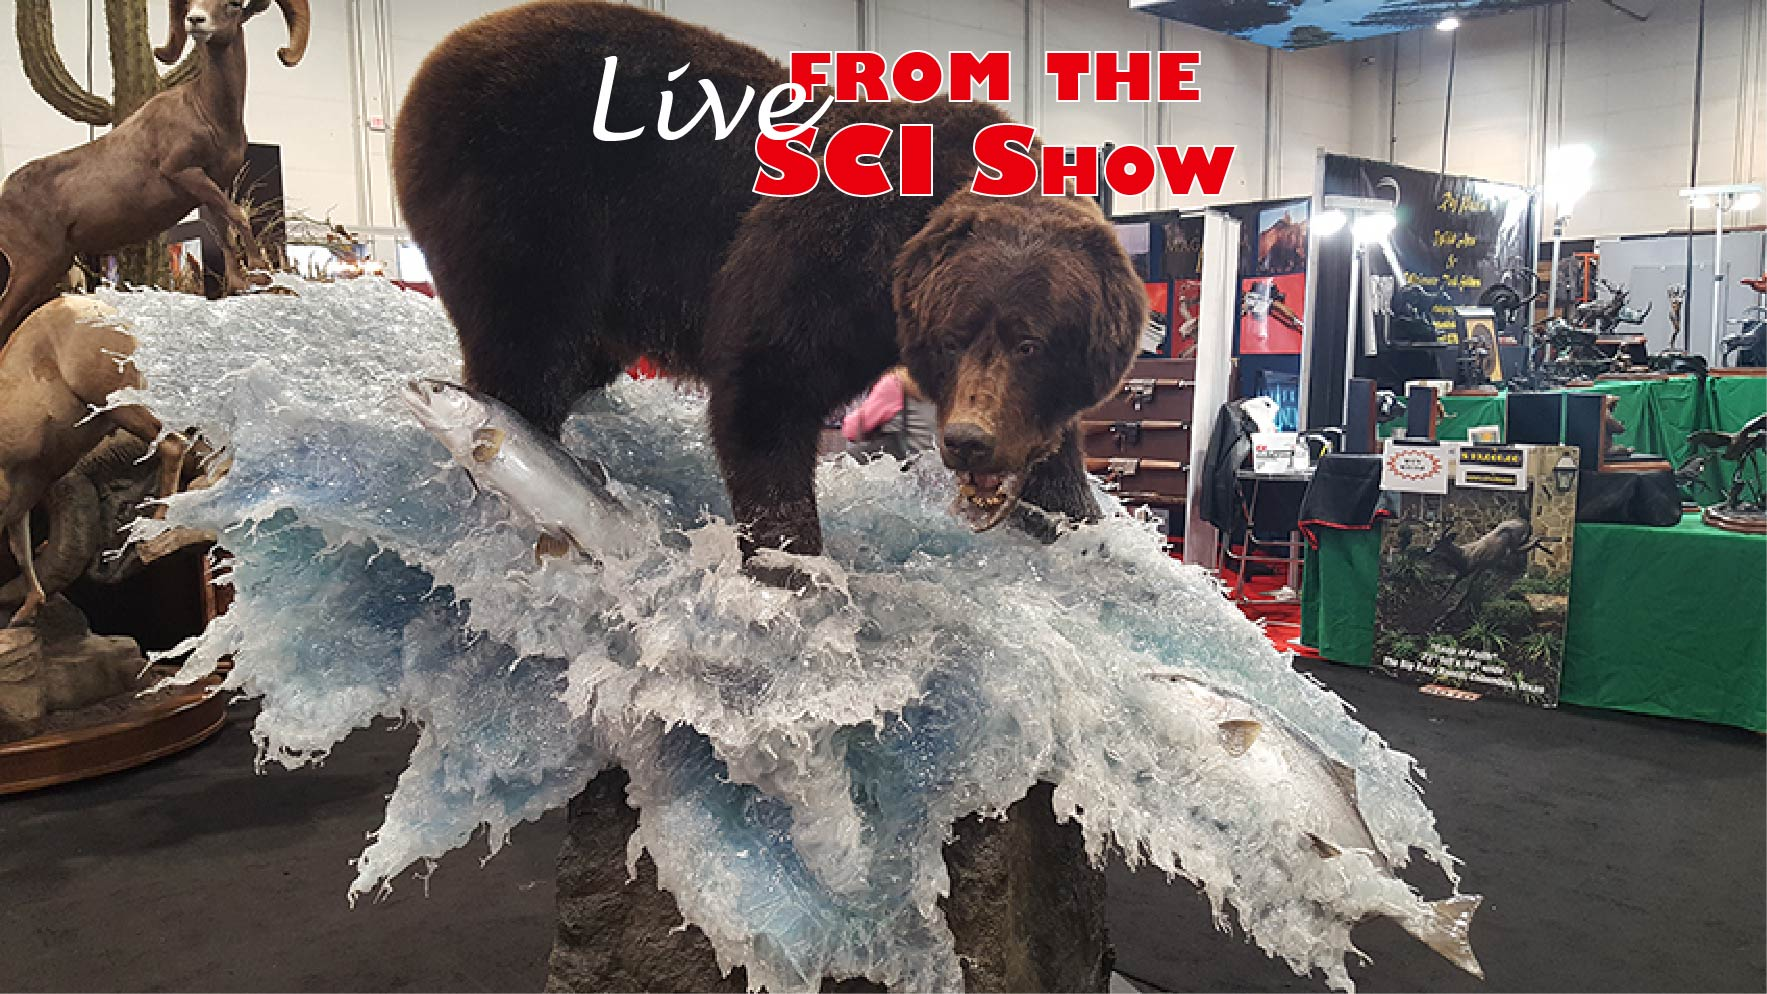 More Than 1,000 Things to Do at the 2019 SCI Show, Jan. 9-12